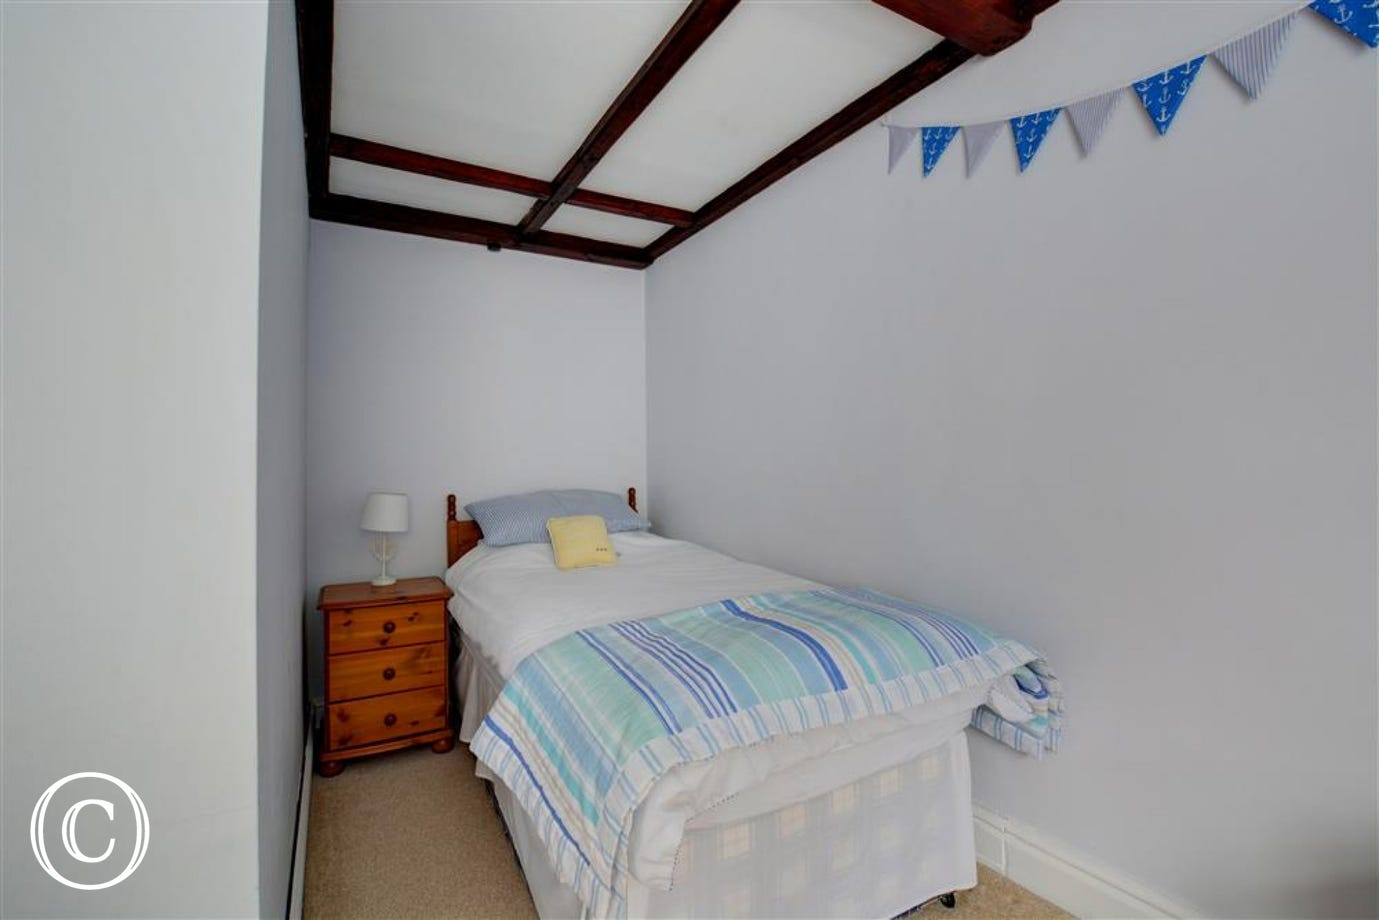 One of the single beds within bedroom three